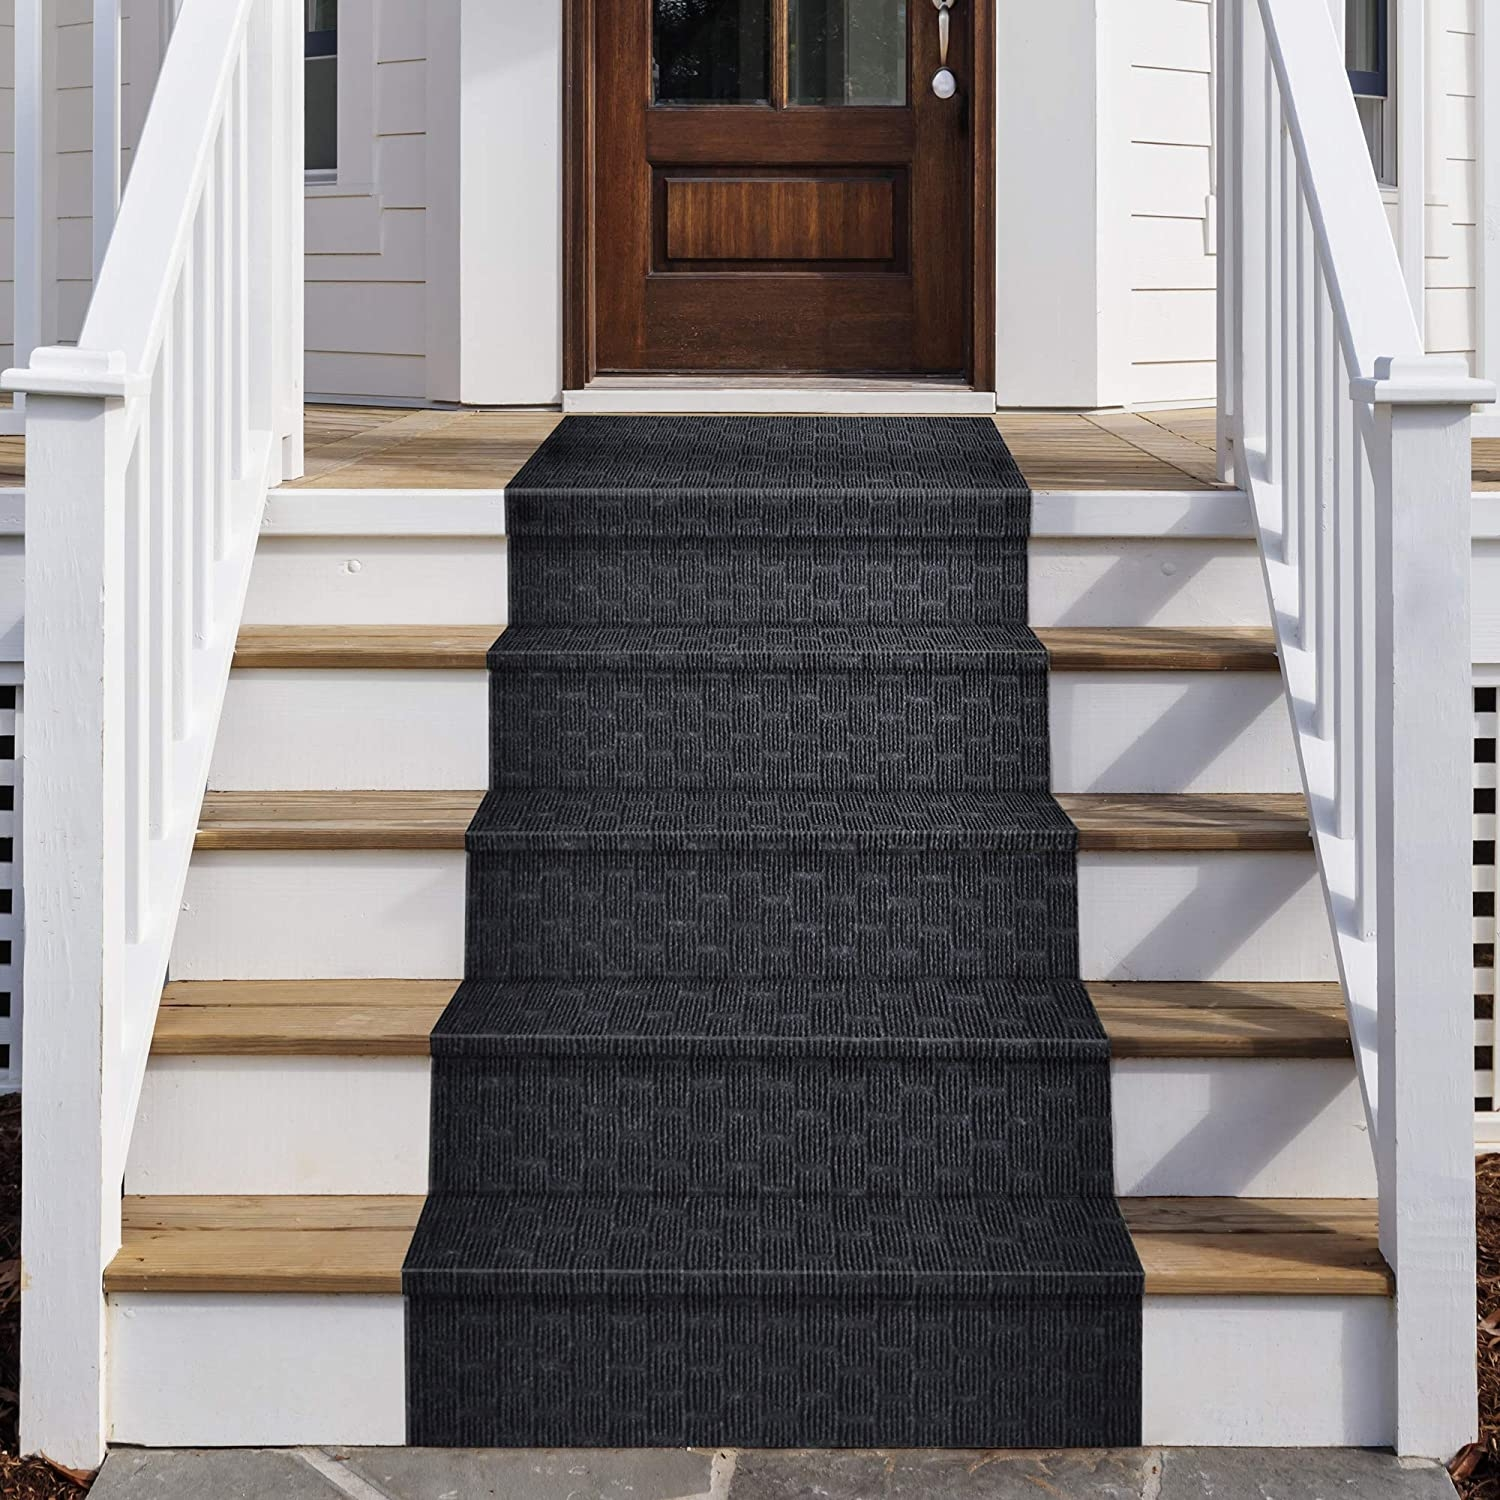 Home Furniture Diy Door Mats Floor Mats Brown Long Wide Stair   Cheap Carpet Runners For Stairs   Wooden Stairs   Stair Railing   Hallway Carpet   Staircase Remodel   Painted Stairs